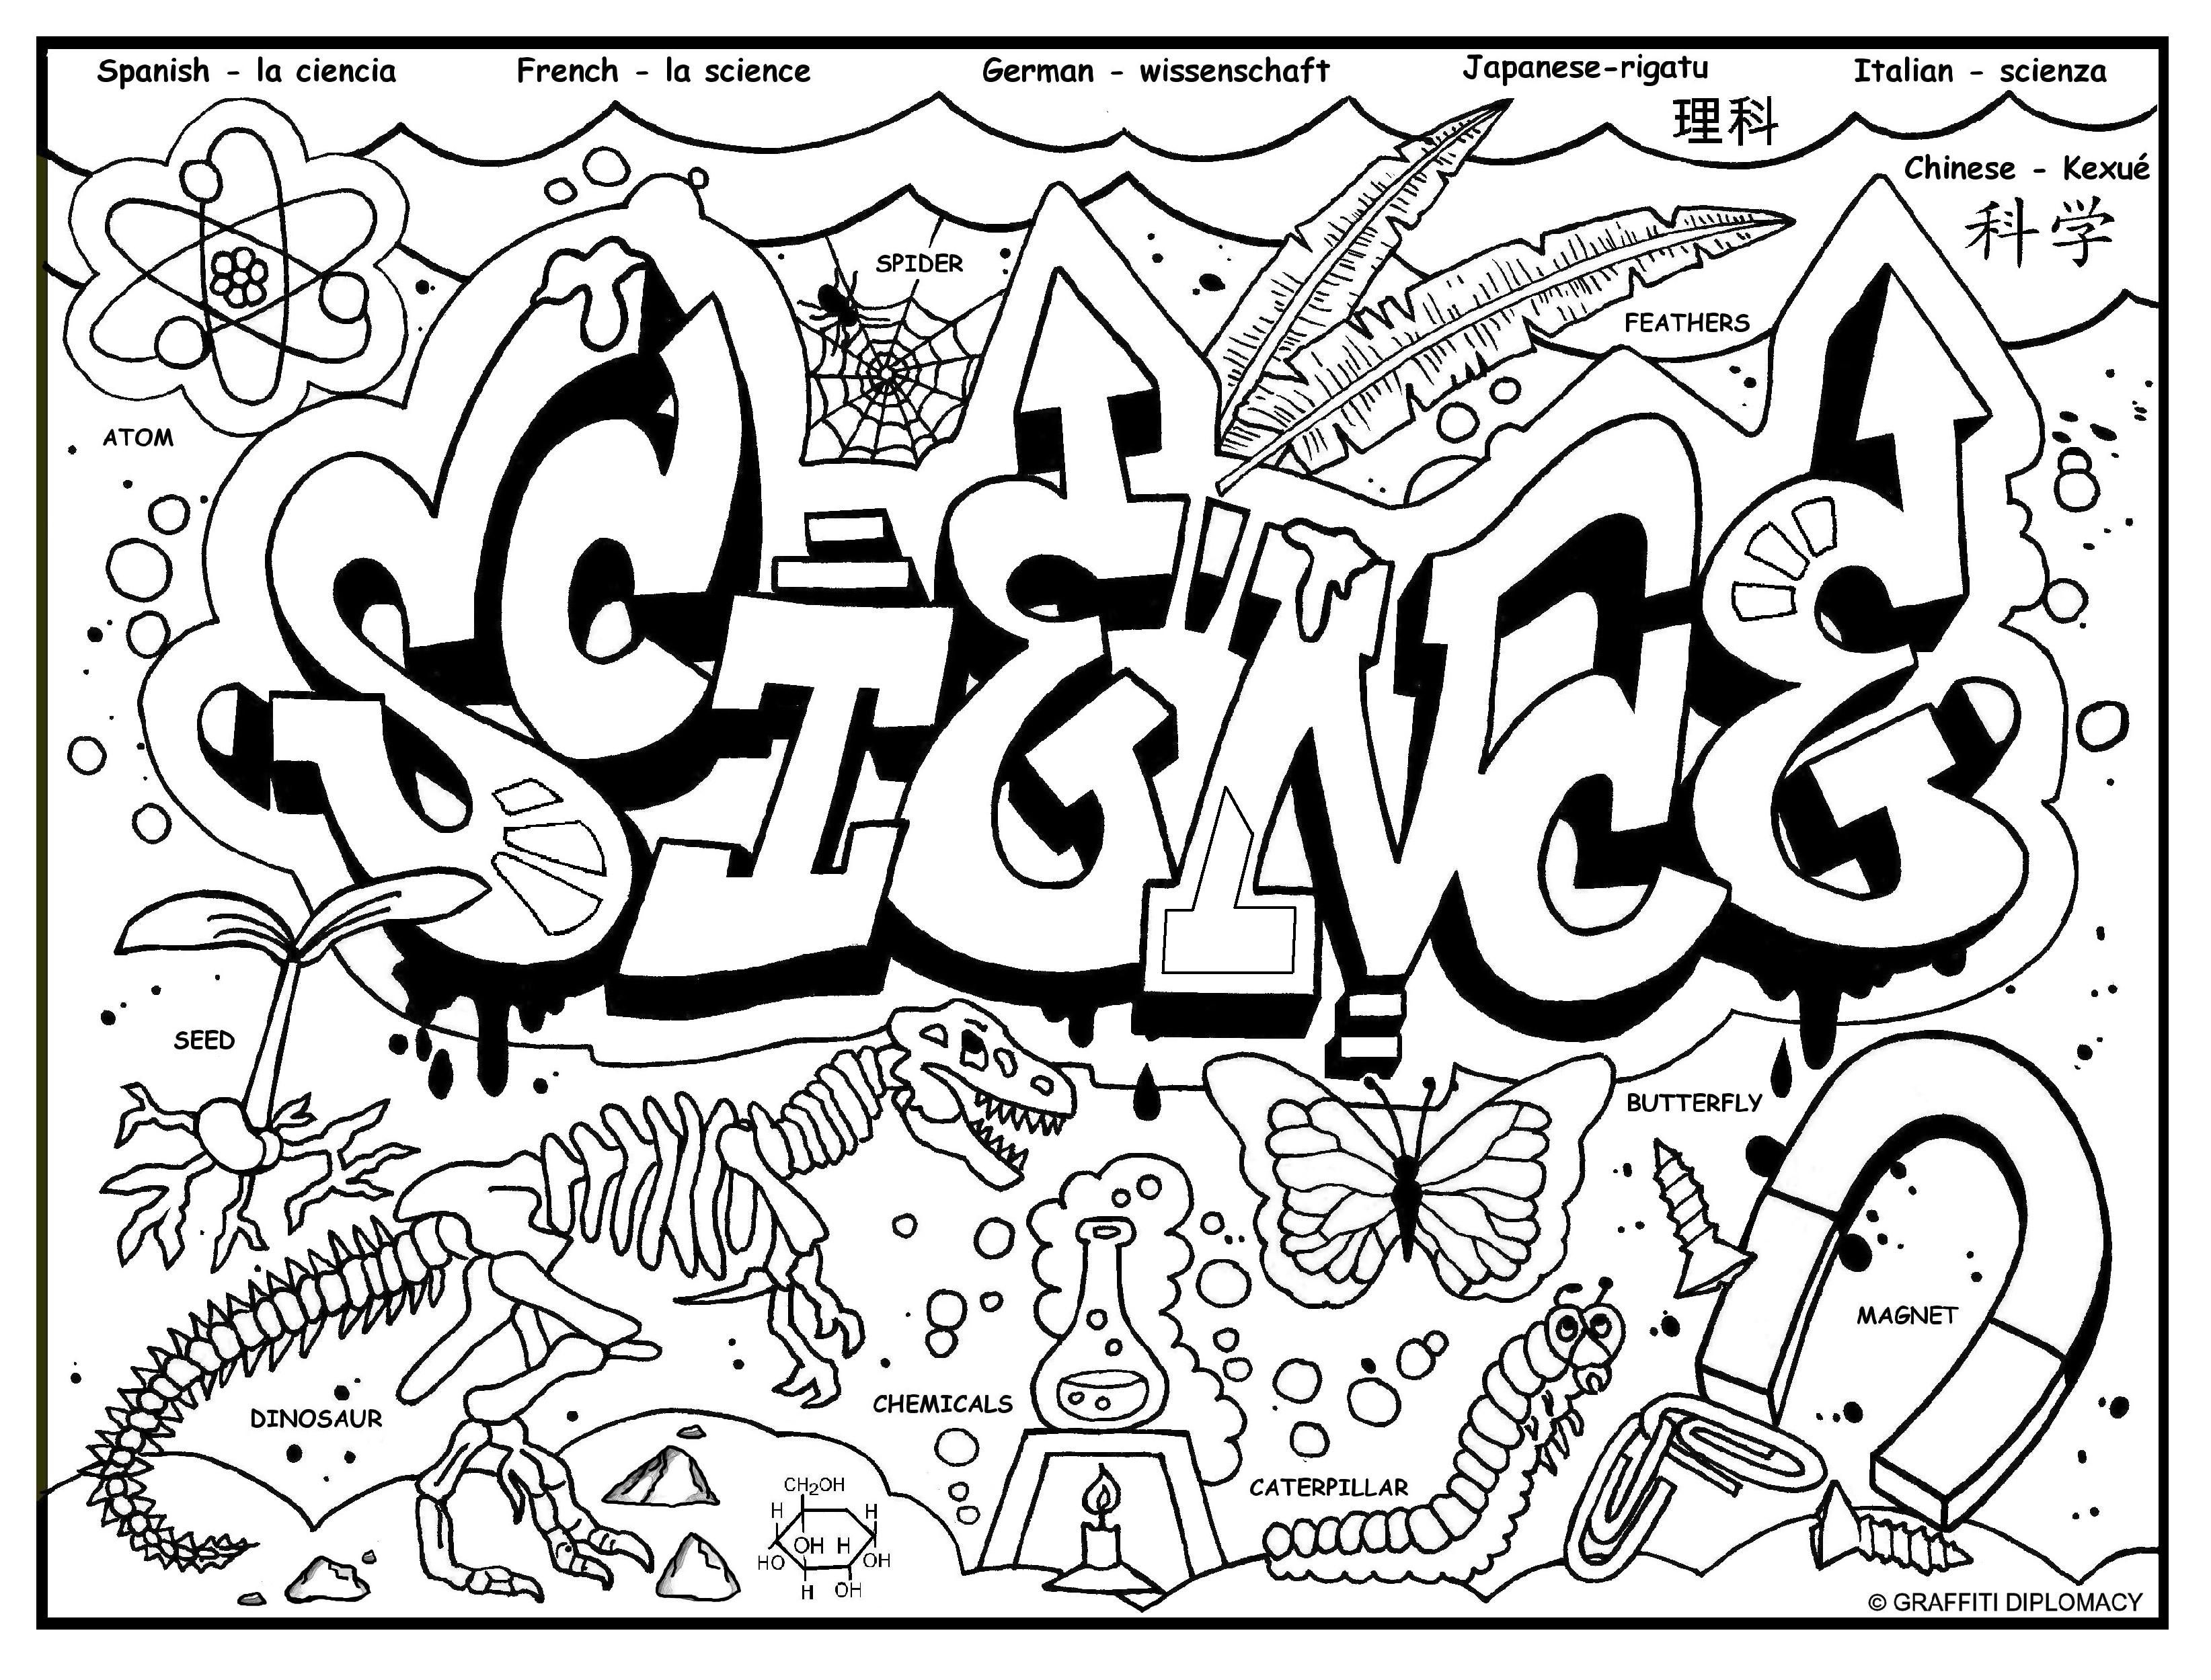 science themed coloring pages 16 best images about coloring pages for science on coloring pages science themed